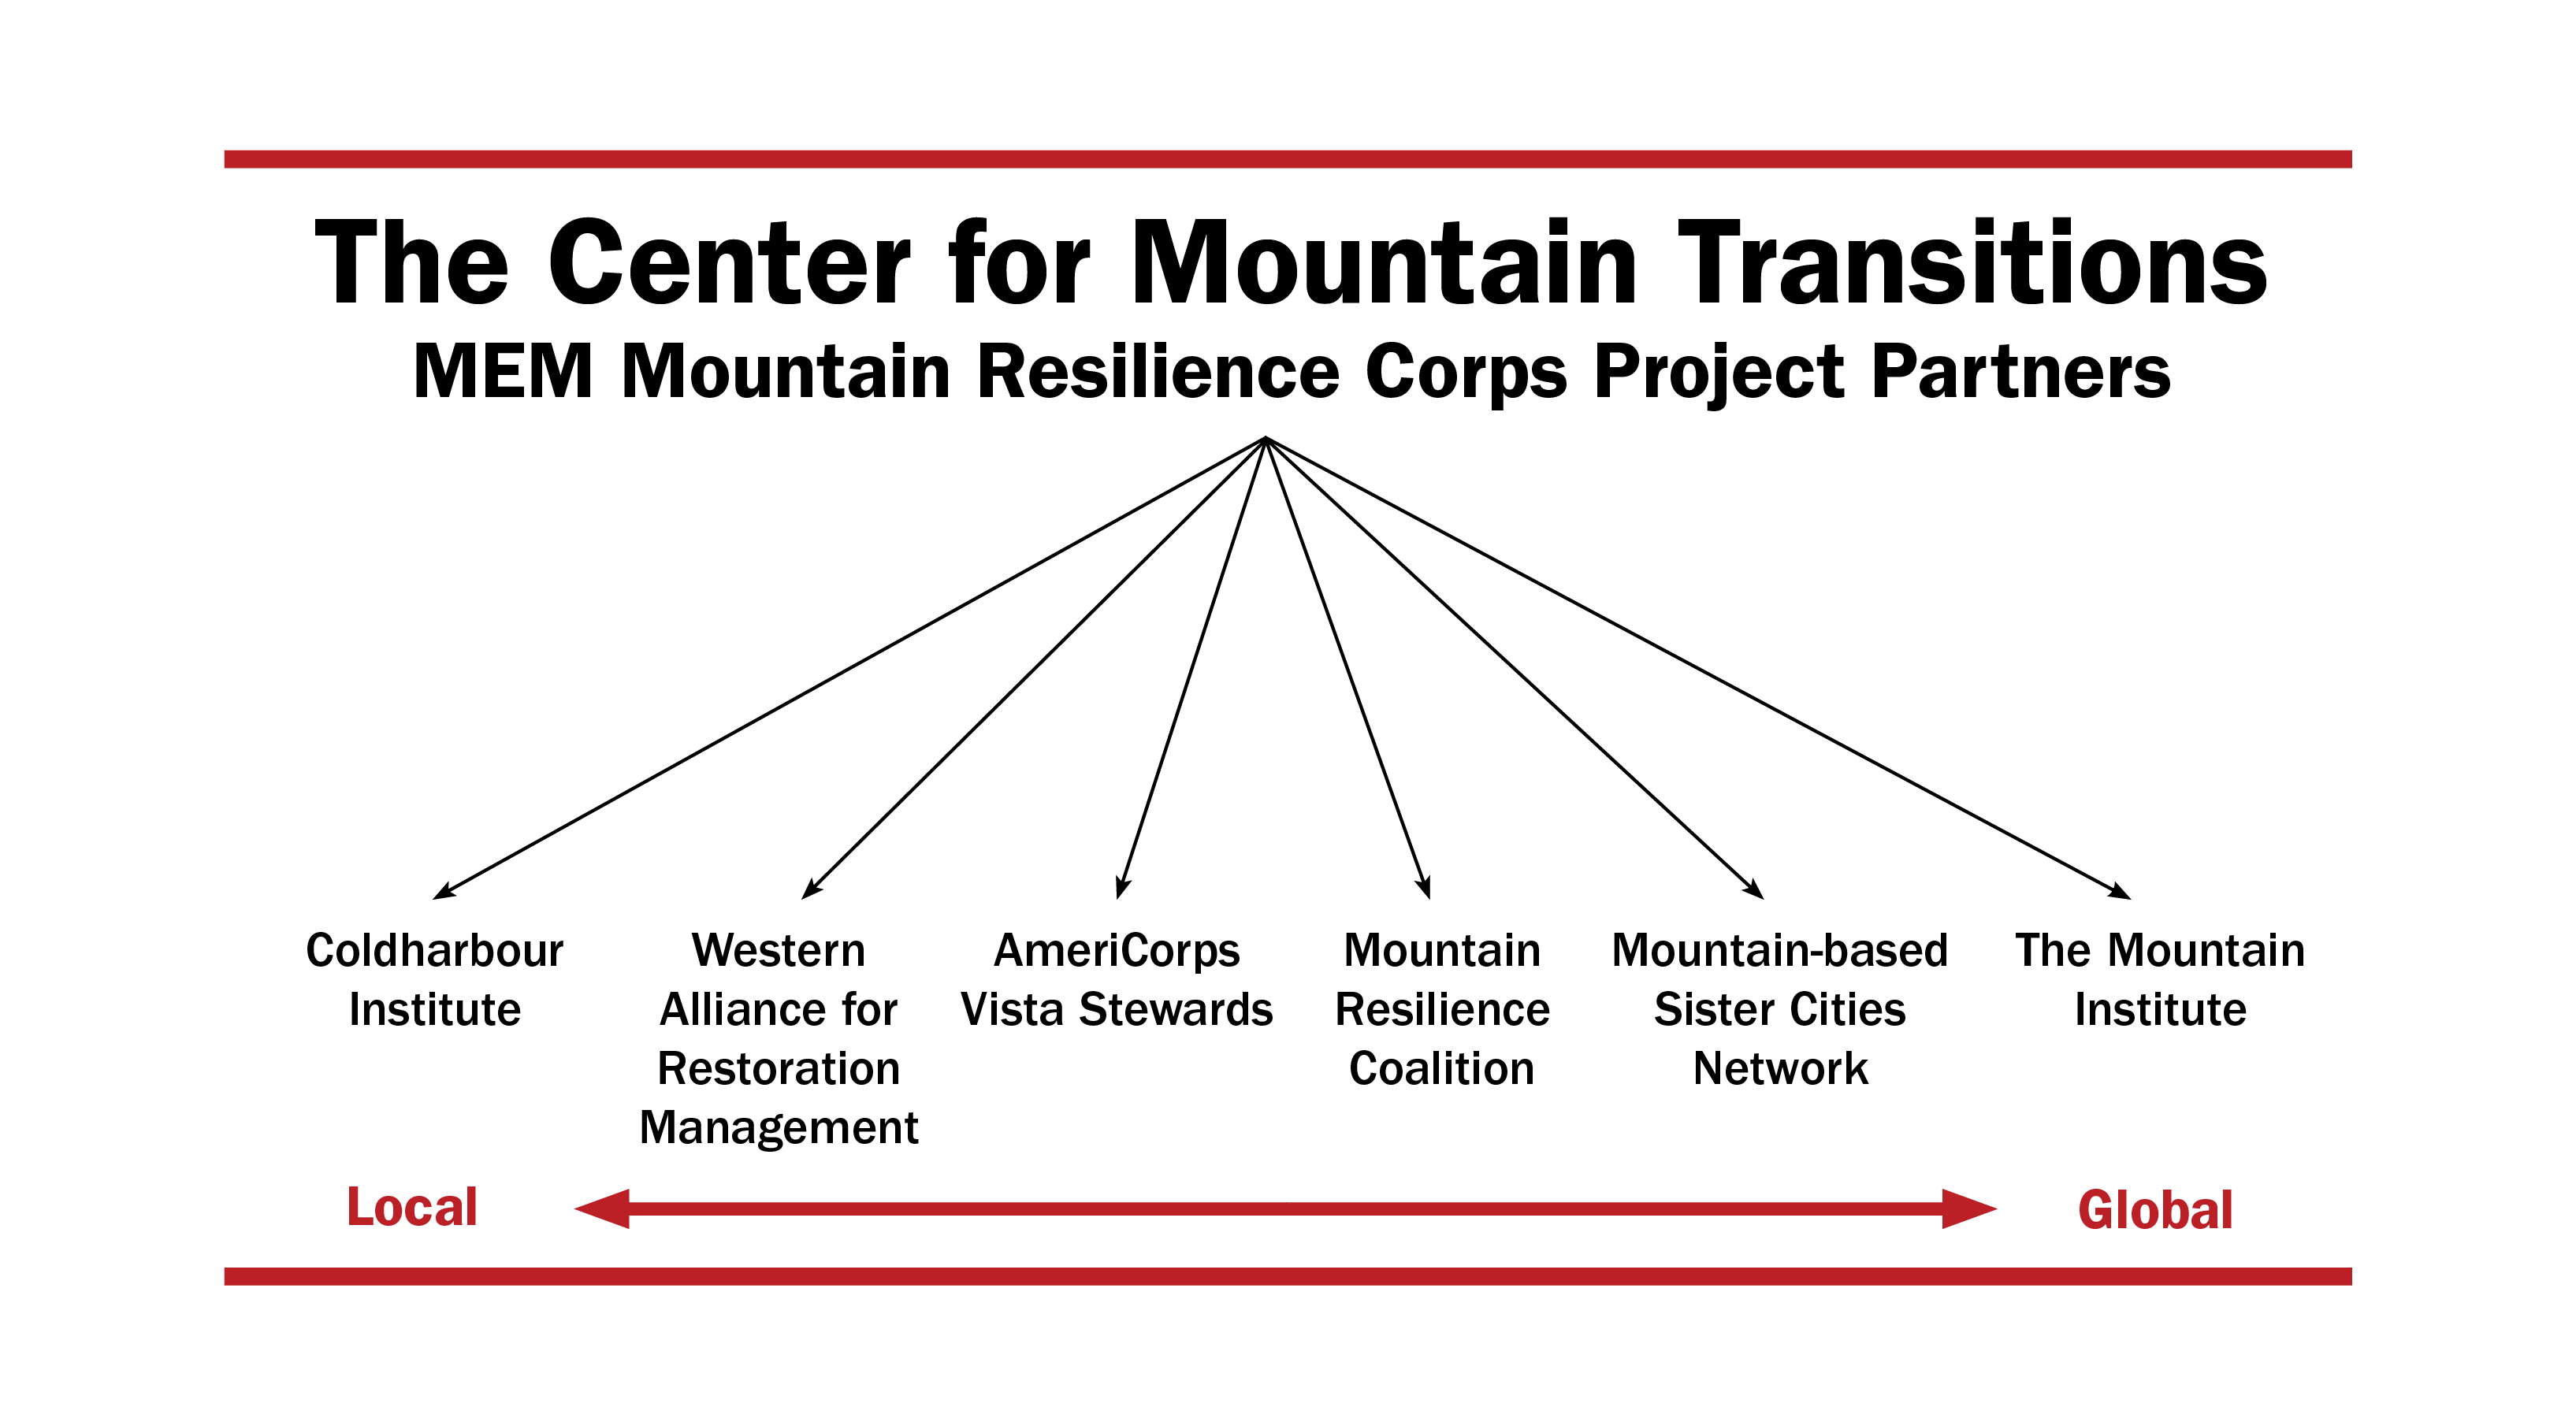 Local through global partners of the Center for Mountain Transitions and the MEM Mountain Resilience Corps Project: Coldharbour Institute, Western Alliance for Restoration Management, AmeriCorps Vista Stewards, Mountain Resilience Coalition, Mountain-base